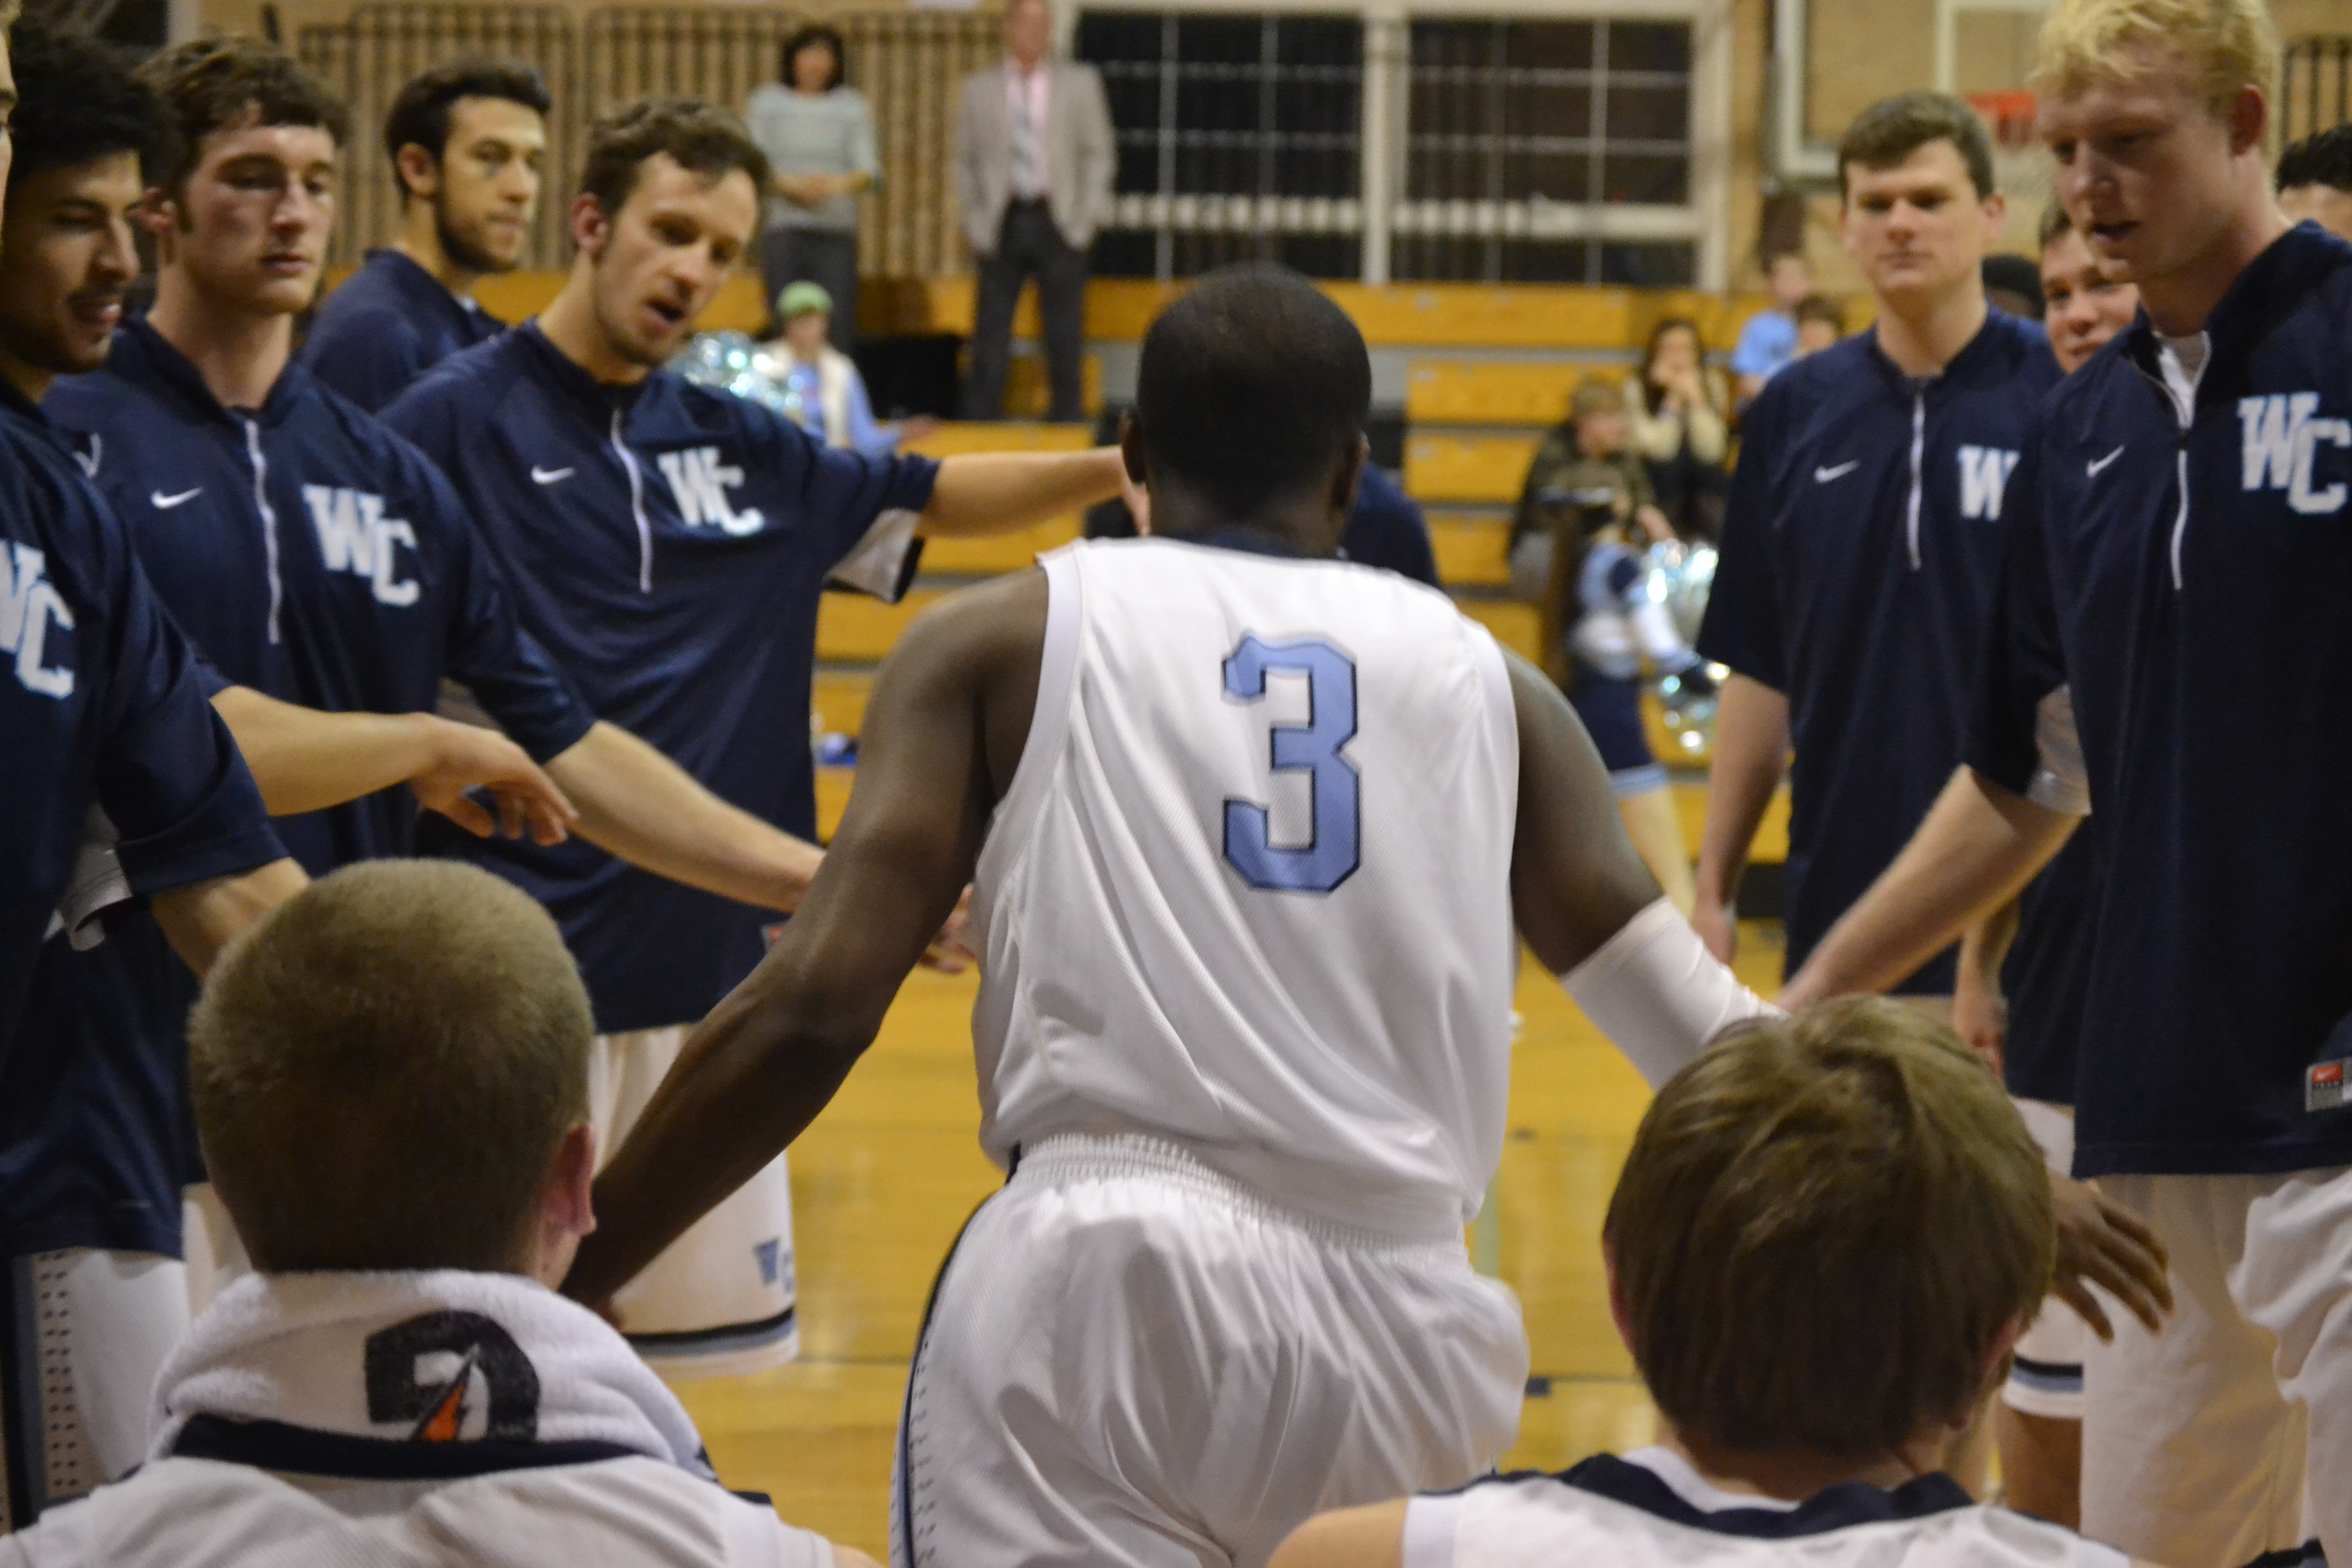 Men's Basketball Falls to MacMurray, 79-71 | The Columns